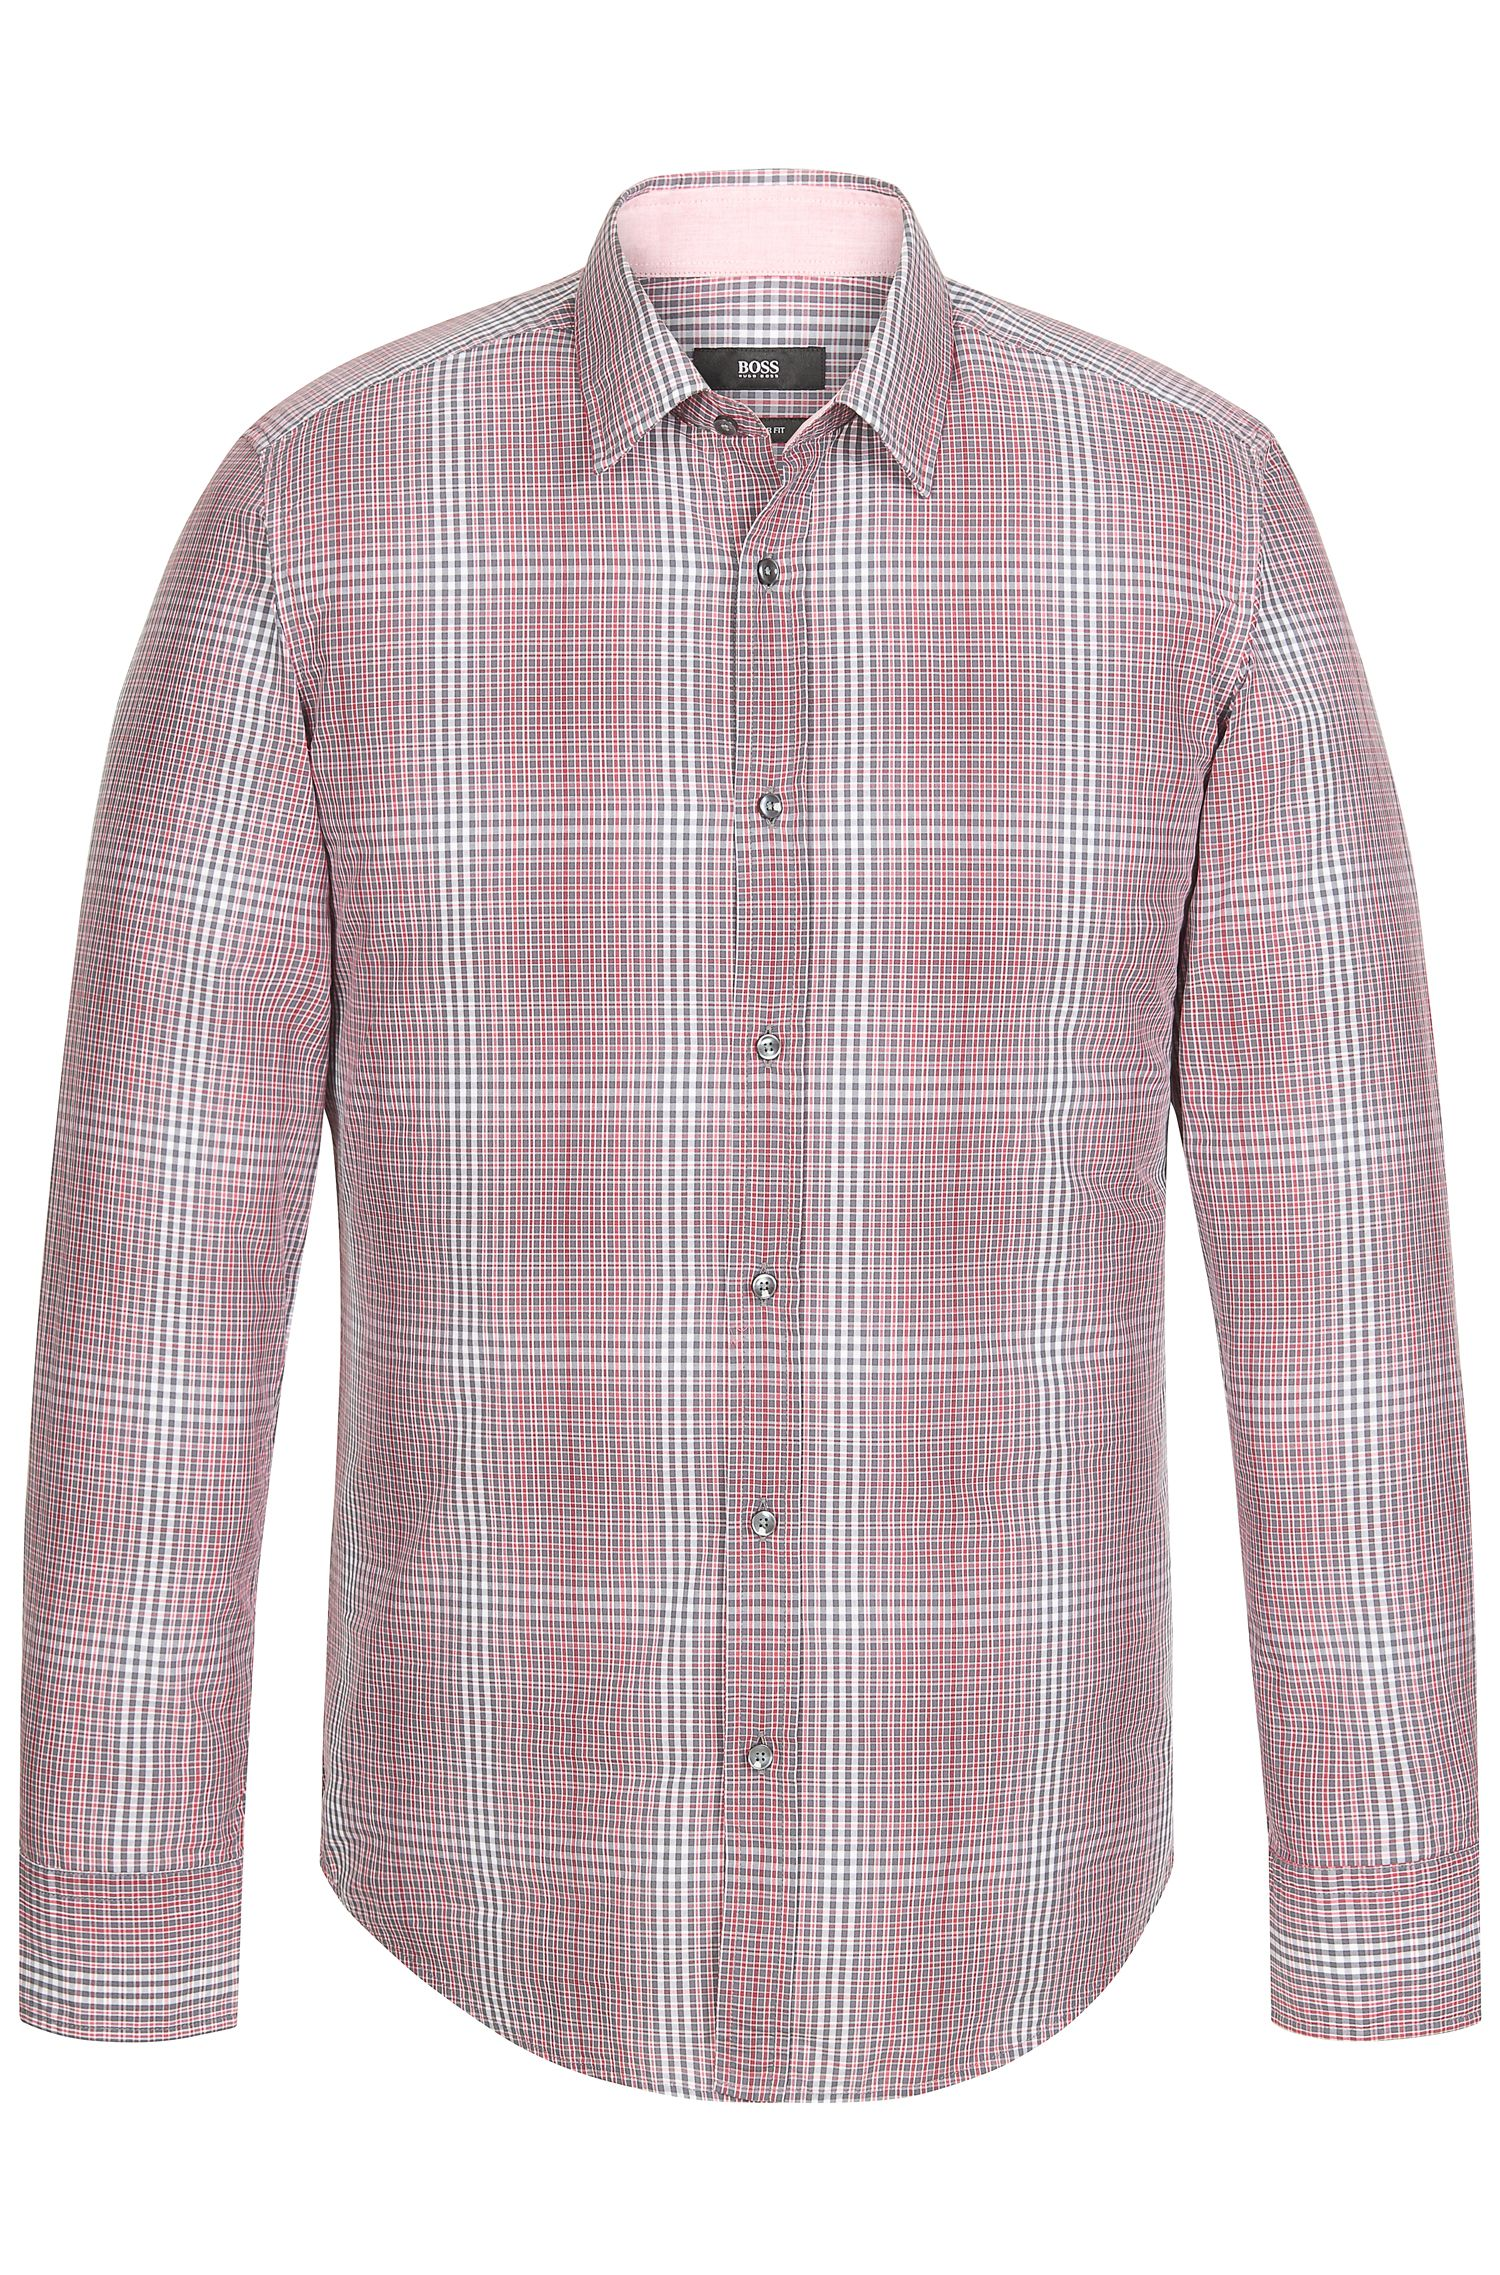 'Lukas' | Regular Fit, Cotton Button Down Shirt